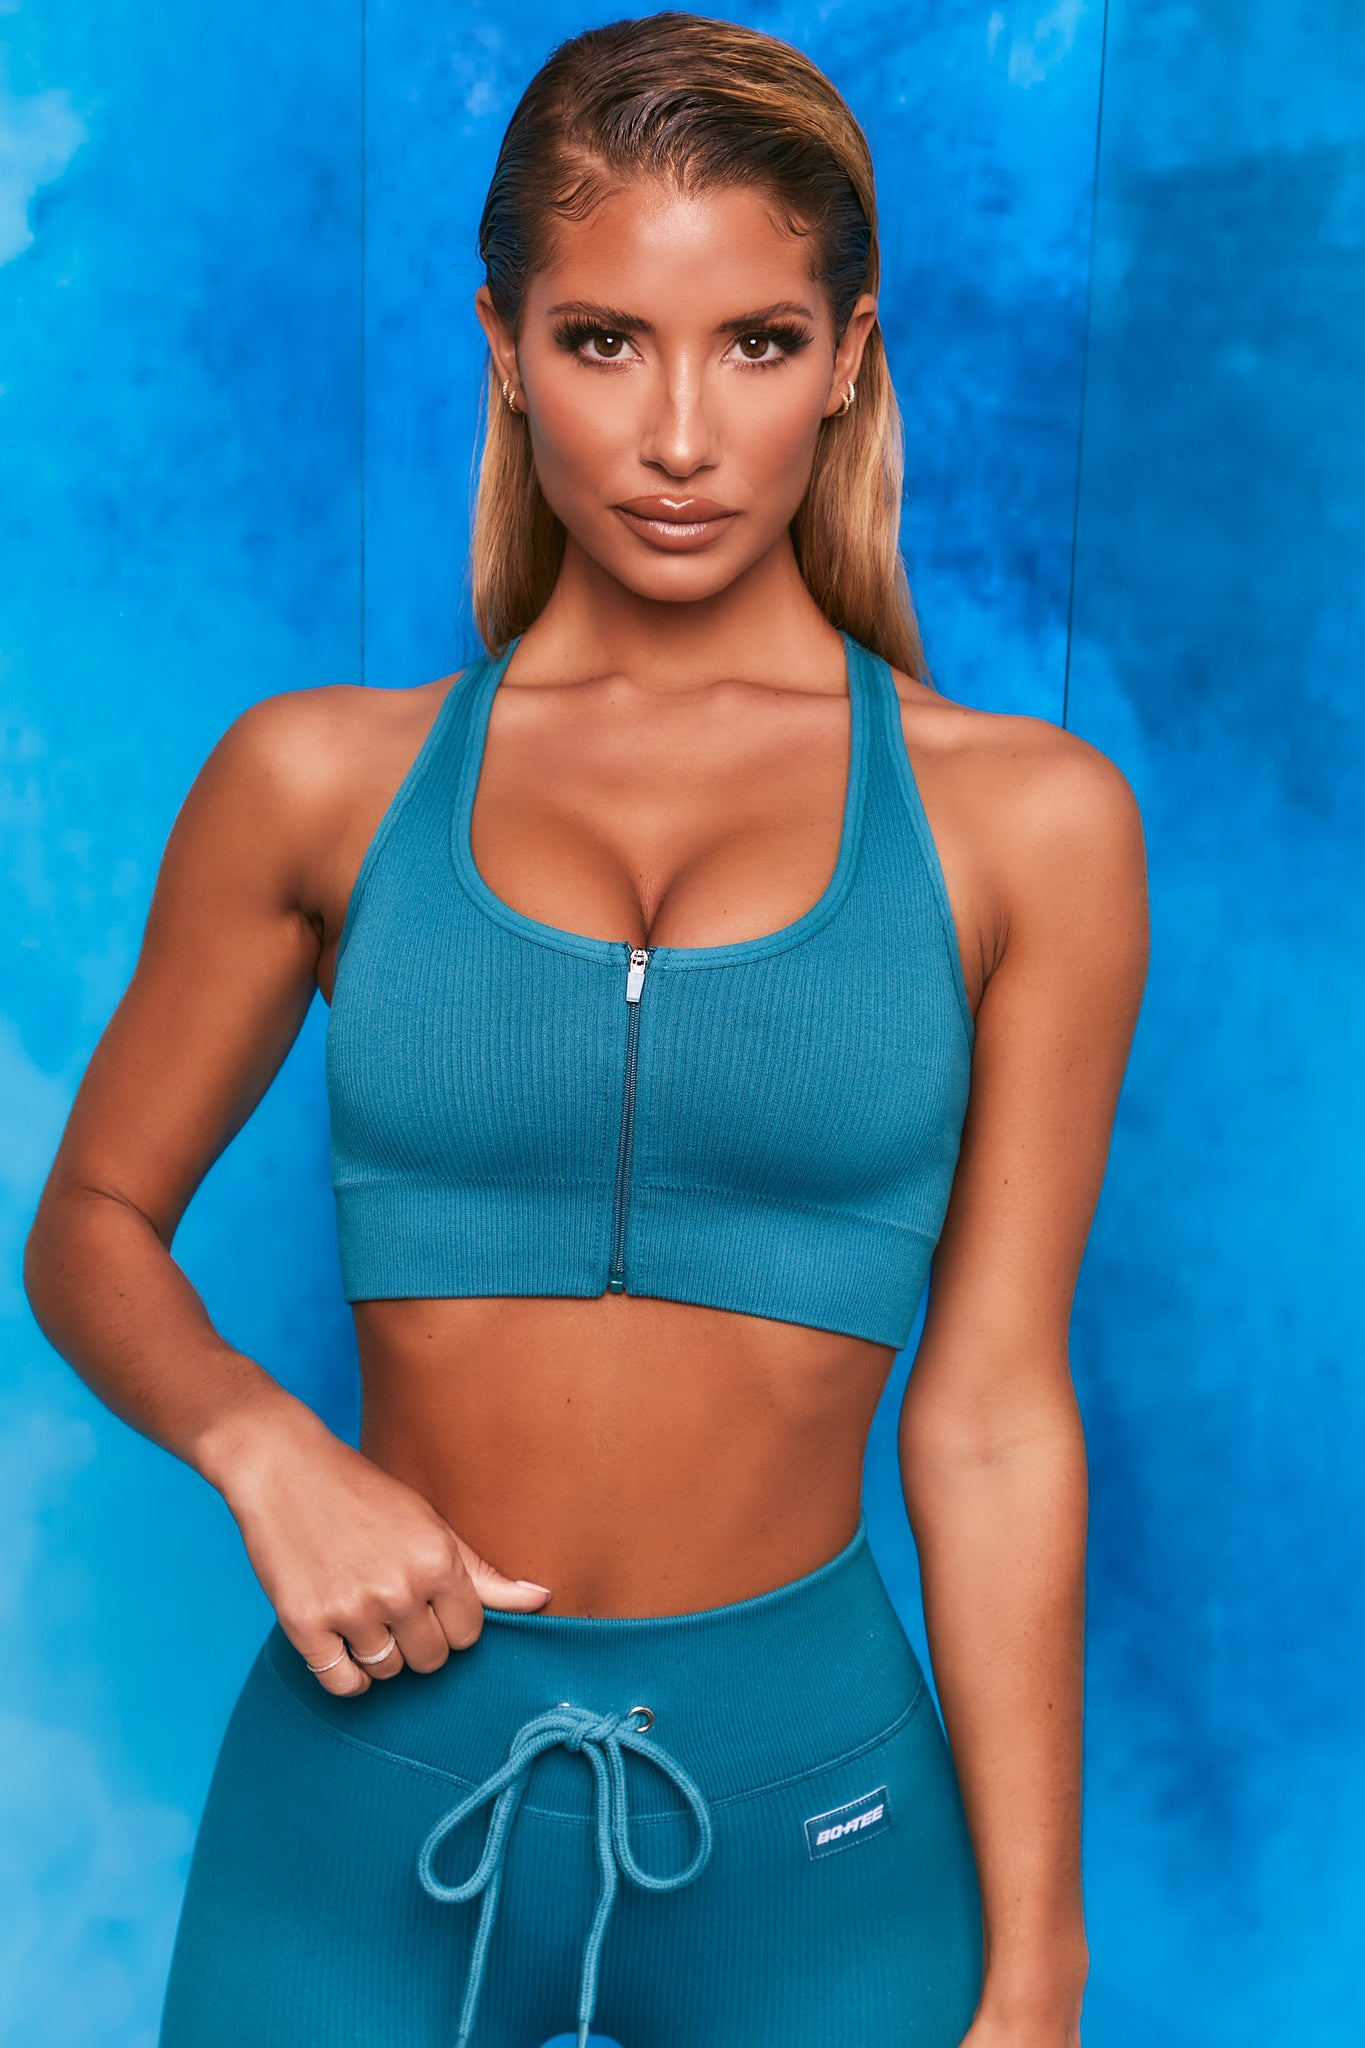 Plain teal ribbed scoop neck sports bra with zip front and racer back. Image 1 of 6